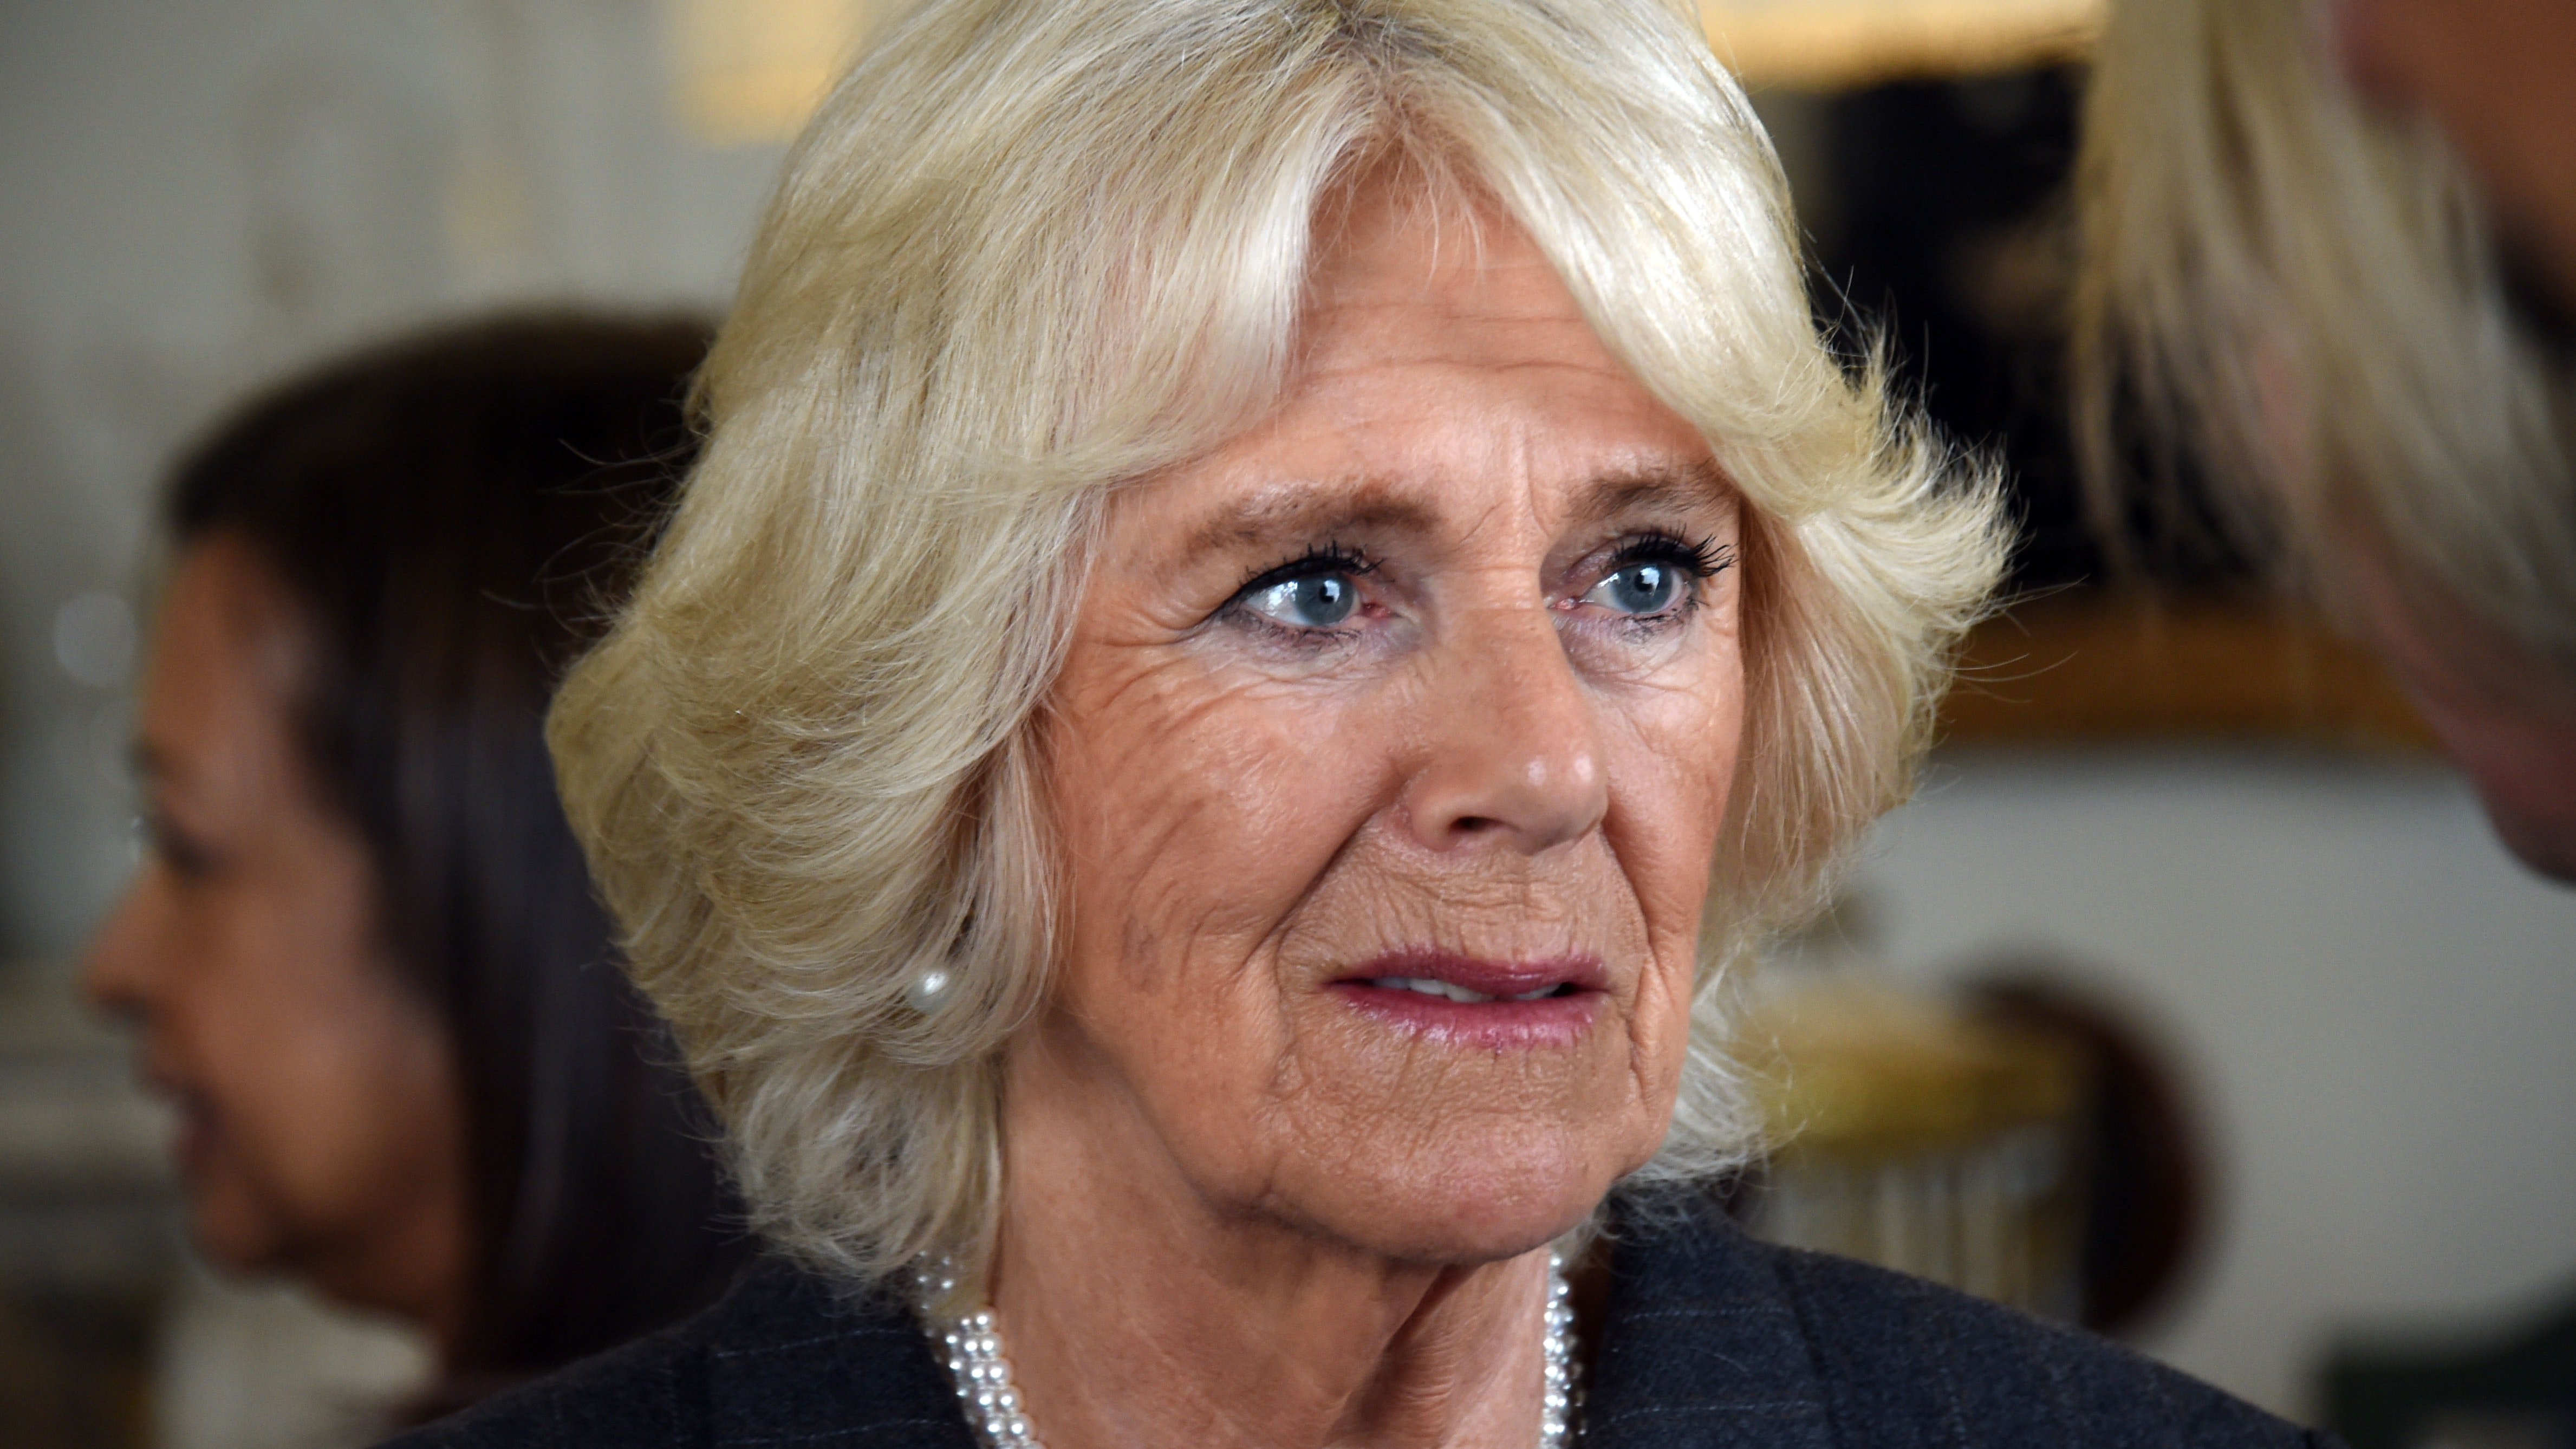 The Duchess of Cornwall visits Avondale Park Primary School